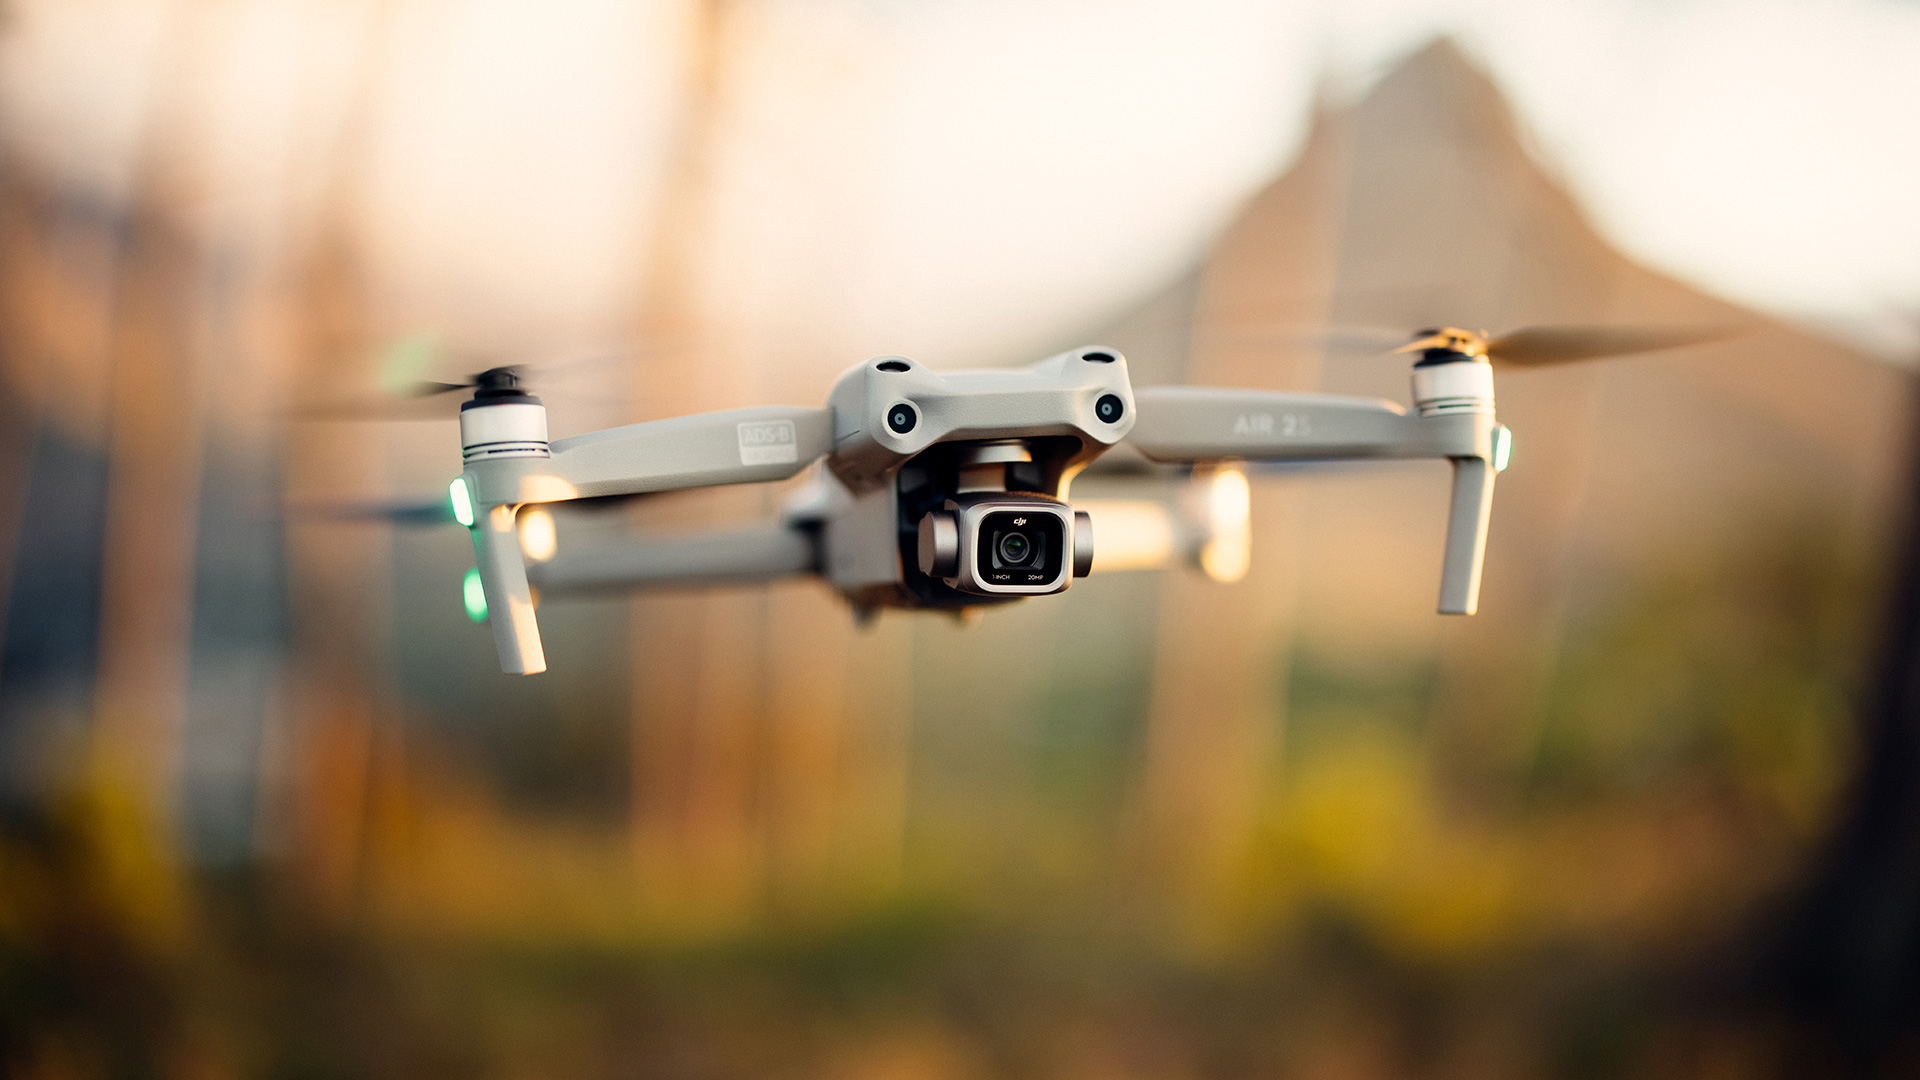 Forget Smartphones | The Next Big Thing May Be Smart Drones (Future of Technology)